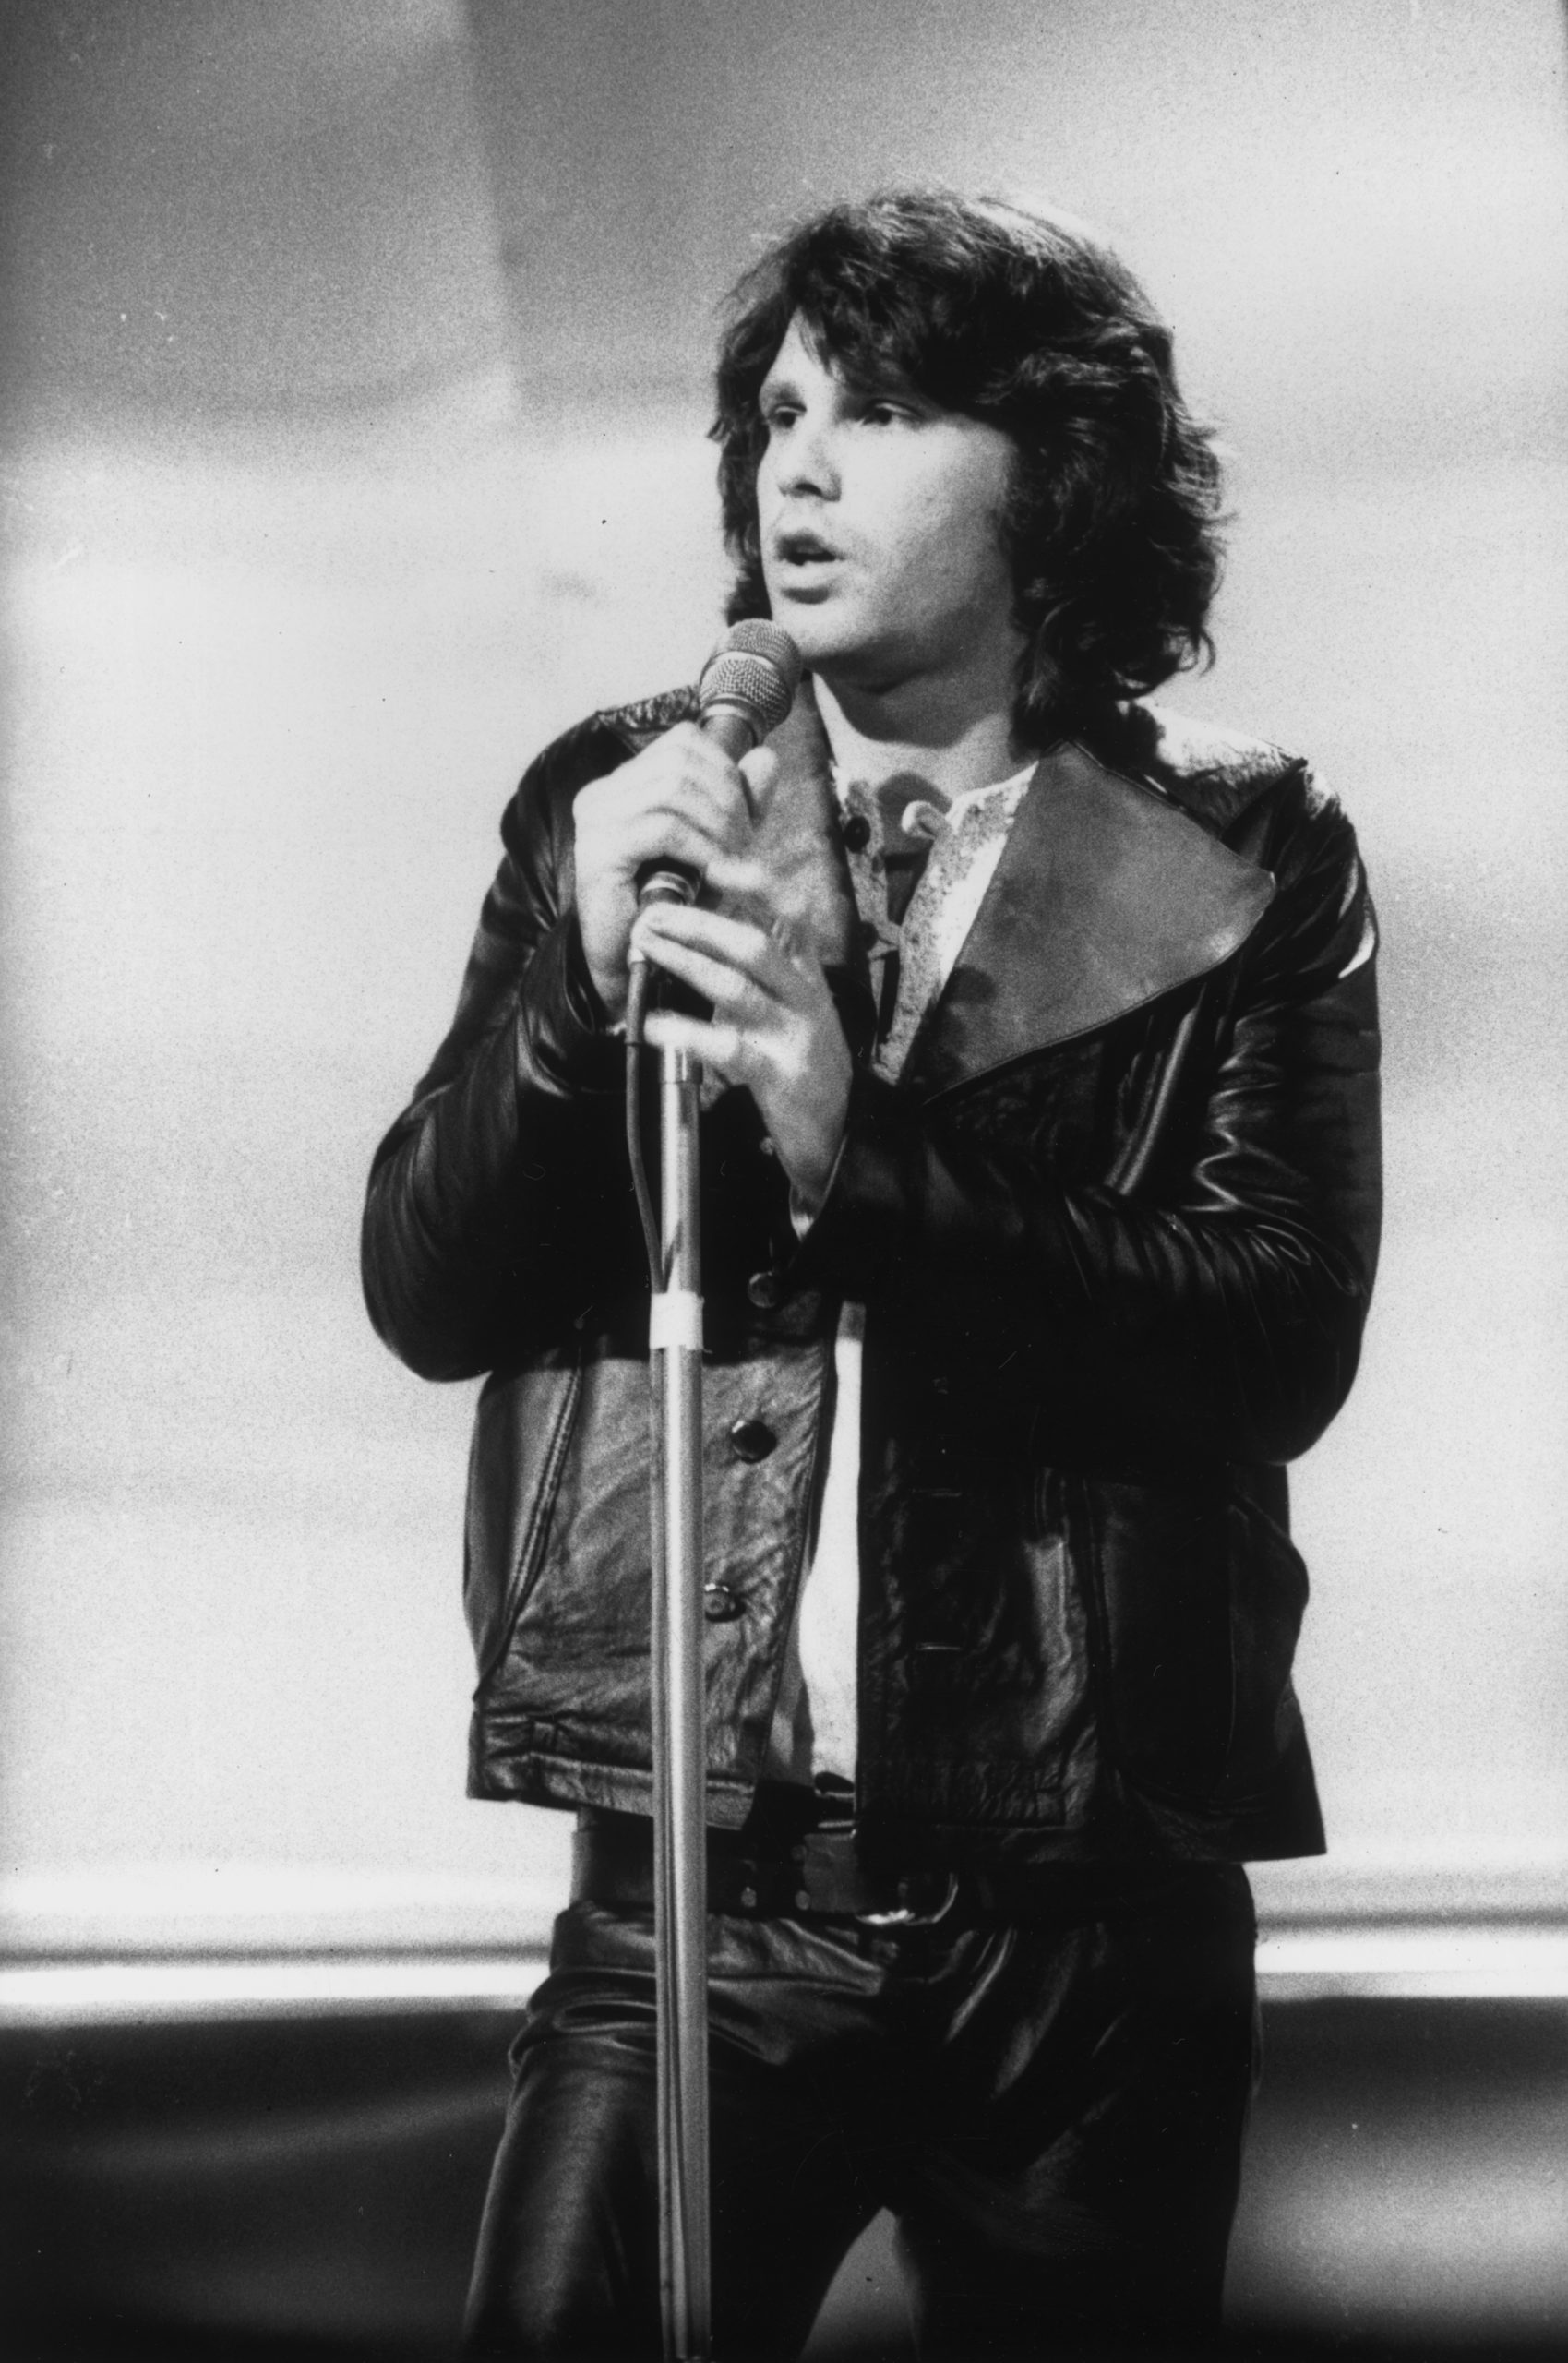 They're already working on a documentary about Jim Morrison